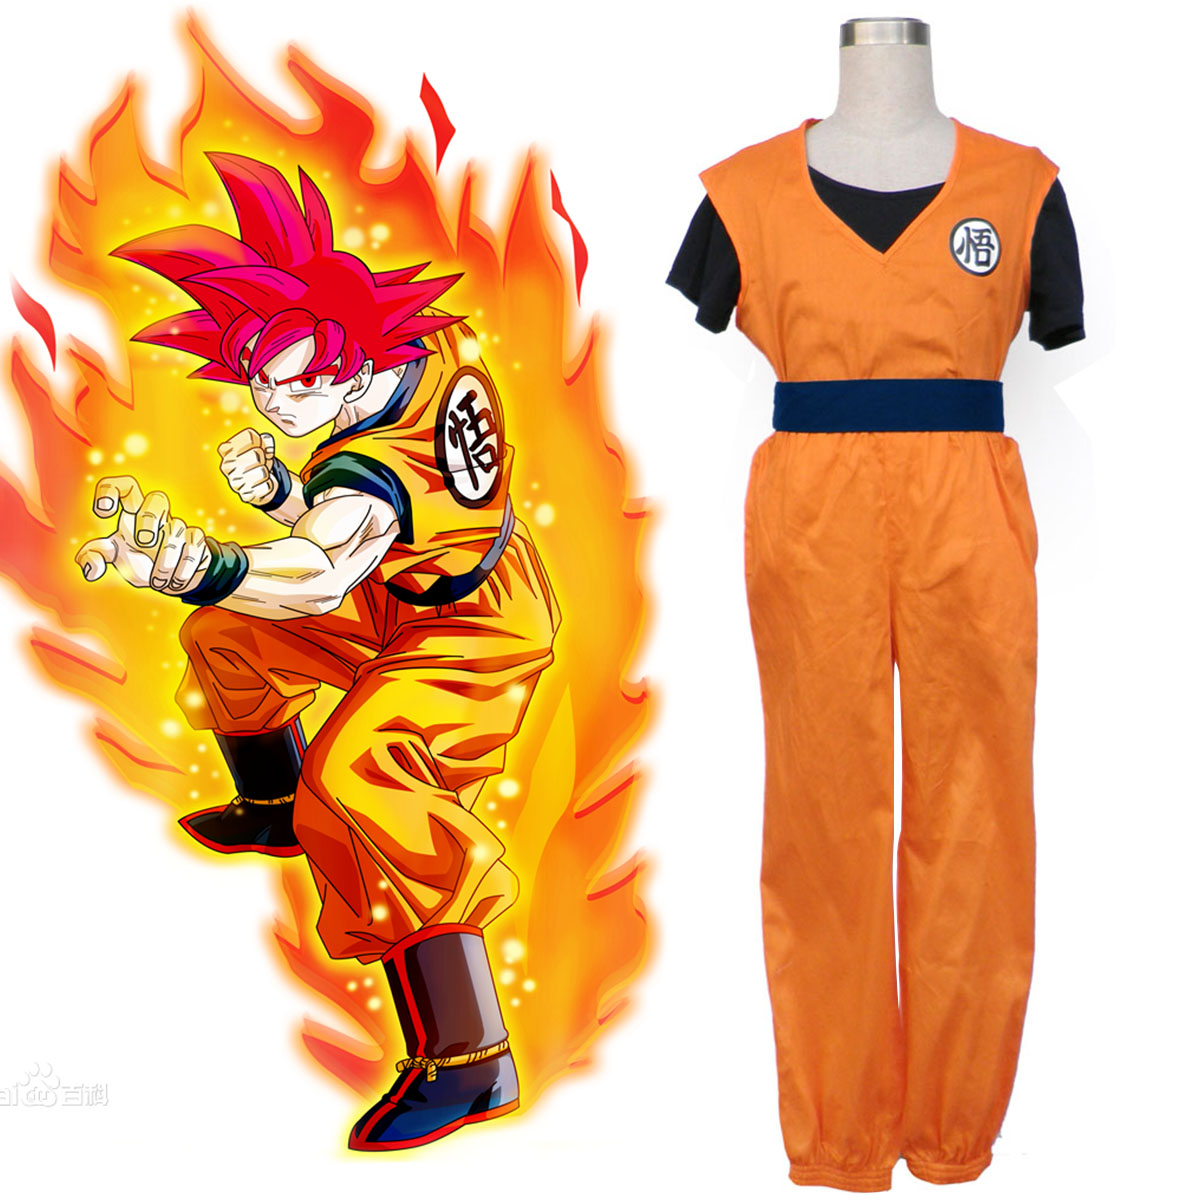 Dragon Ball Son Goku 2 Cosplay Kostym Sverige